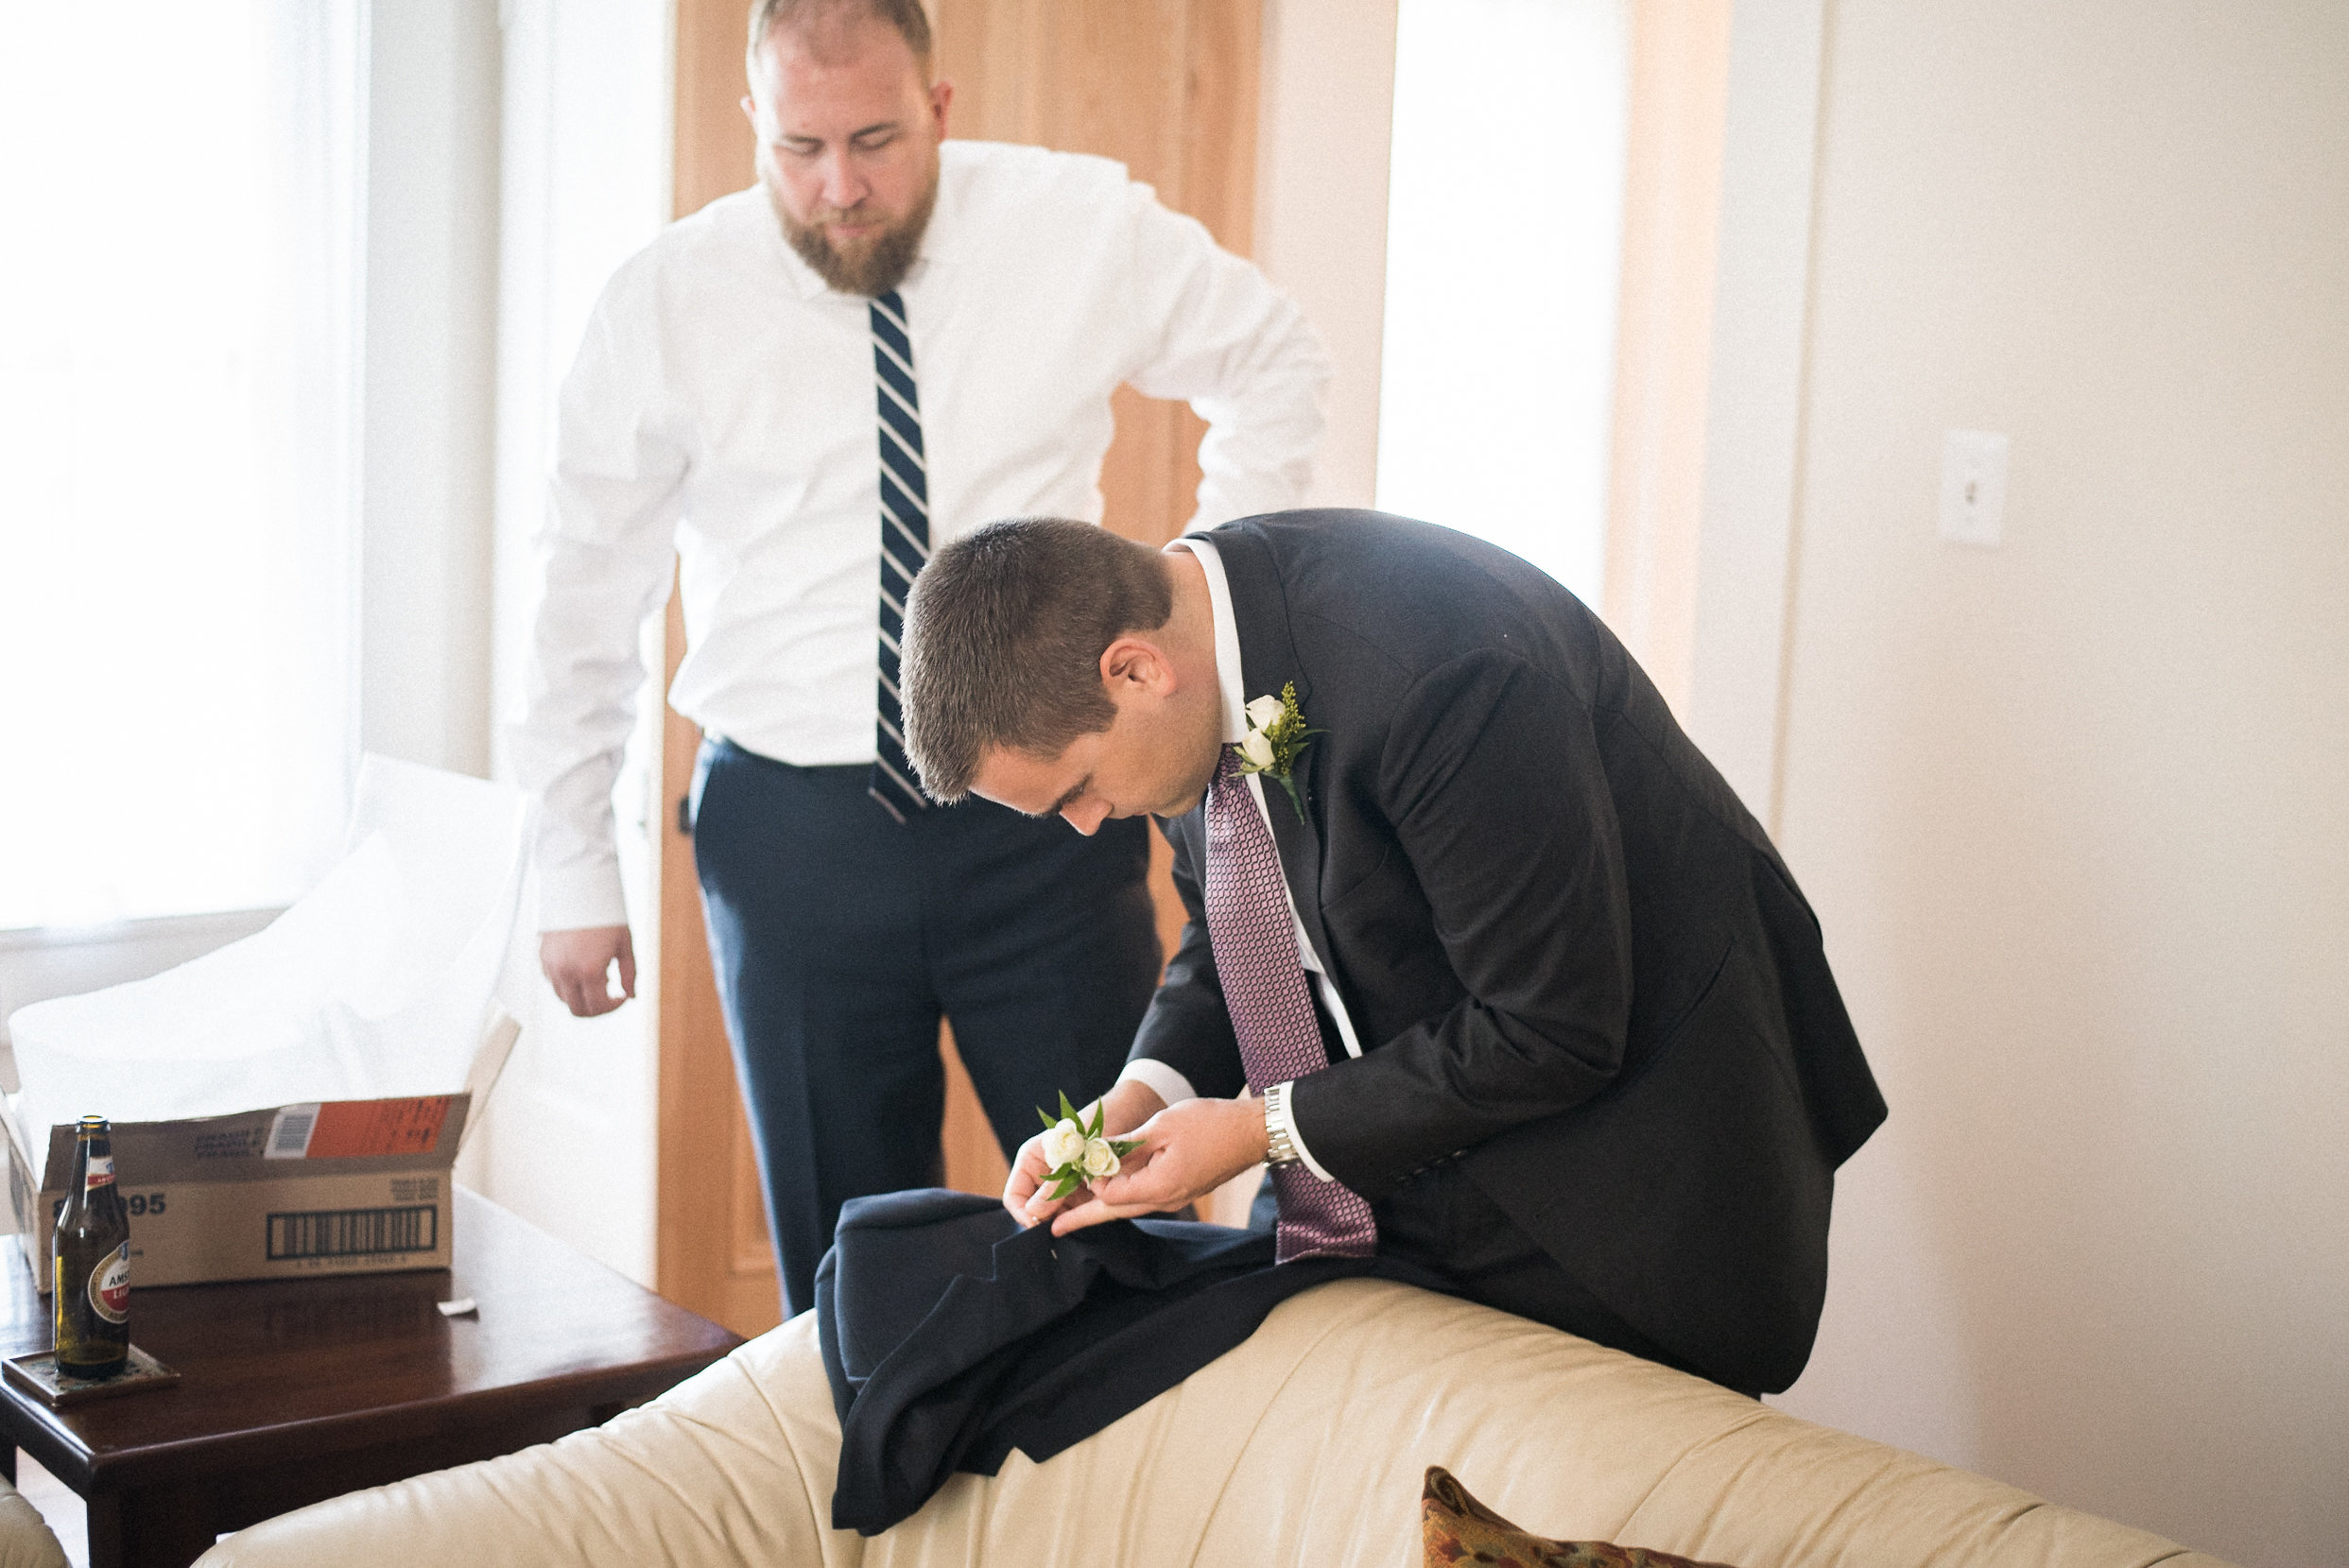 Groom putting flower in jacket